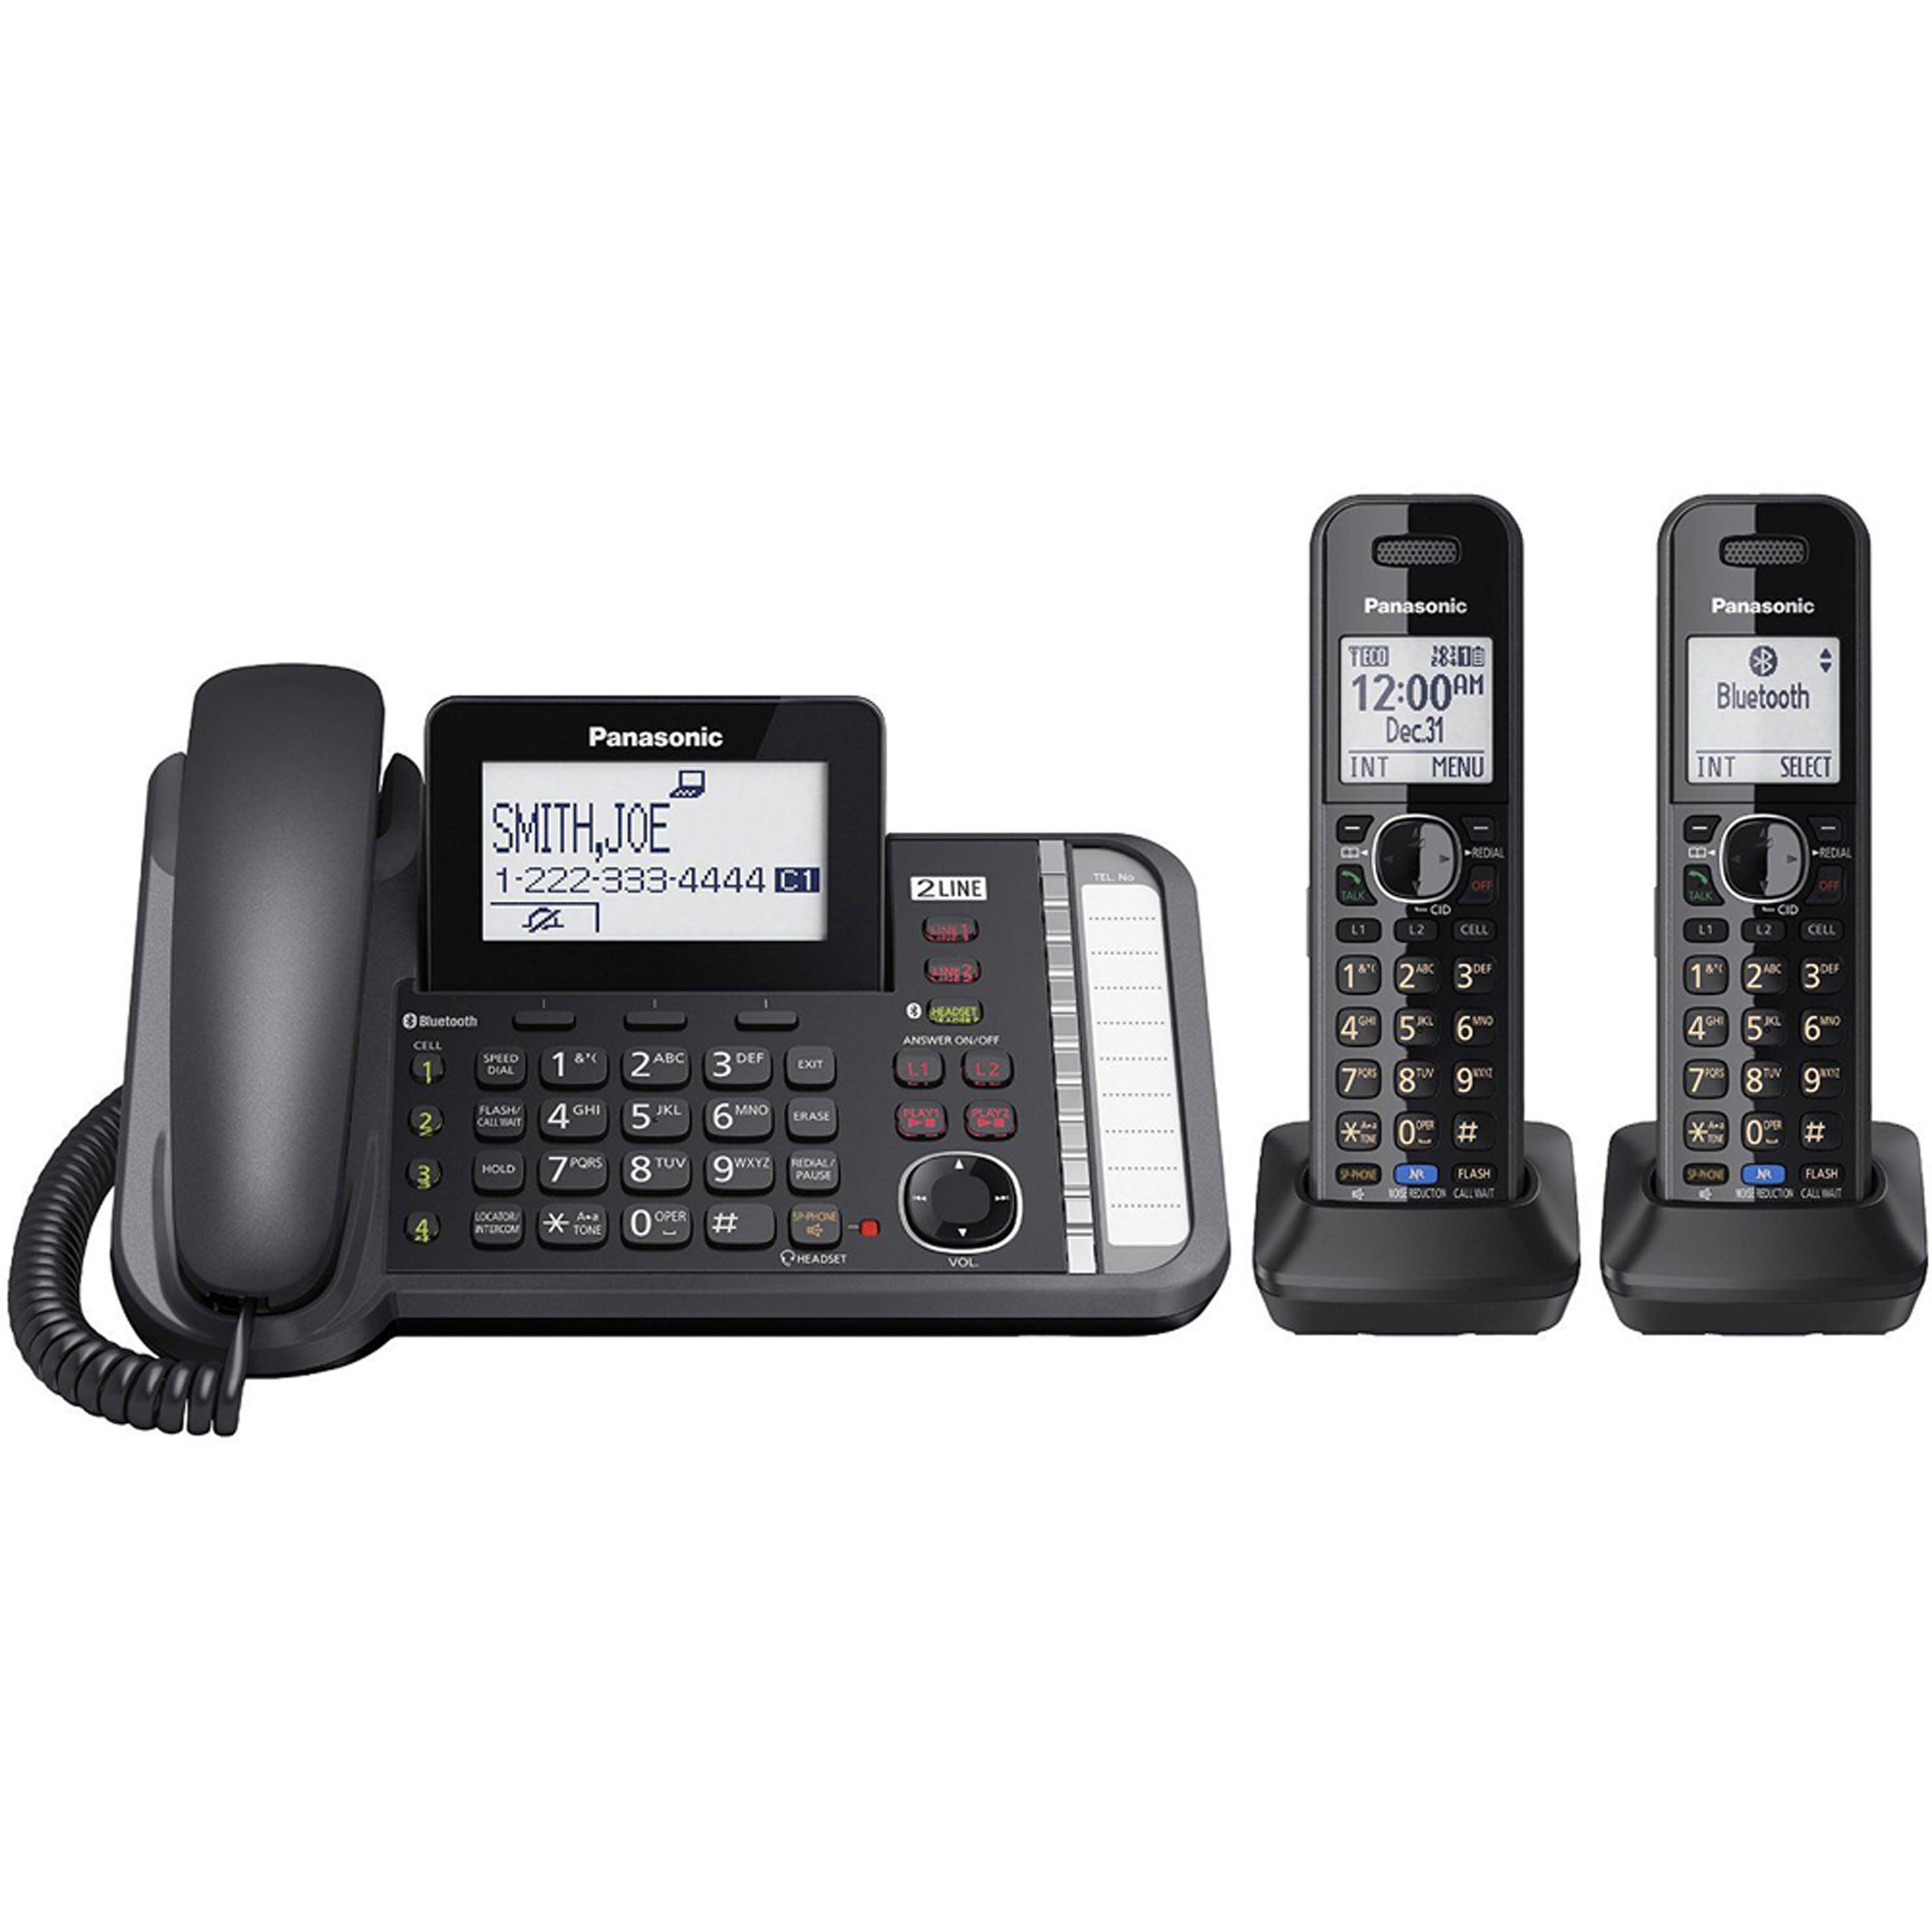 Panasonic Link2Cell KX-TG9582B Duo Cordless Phone by Panasonic Consumer